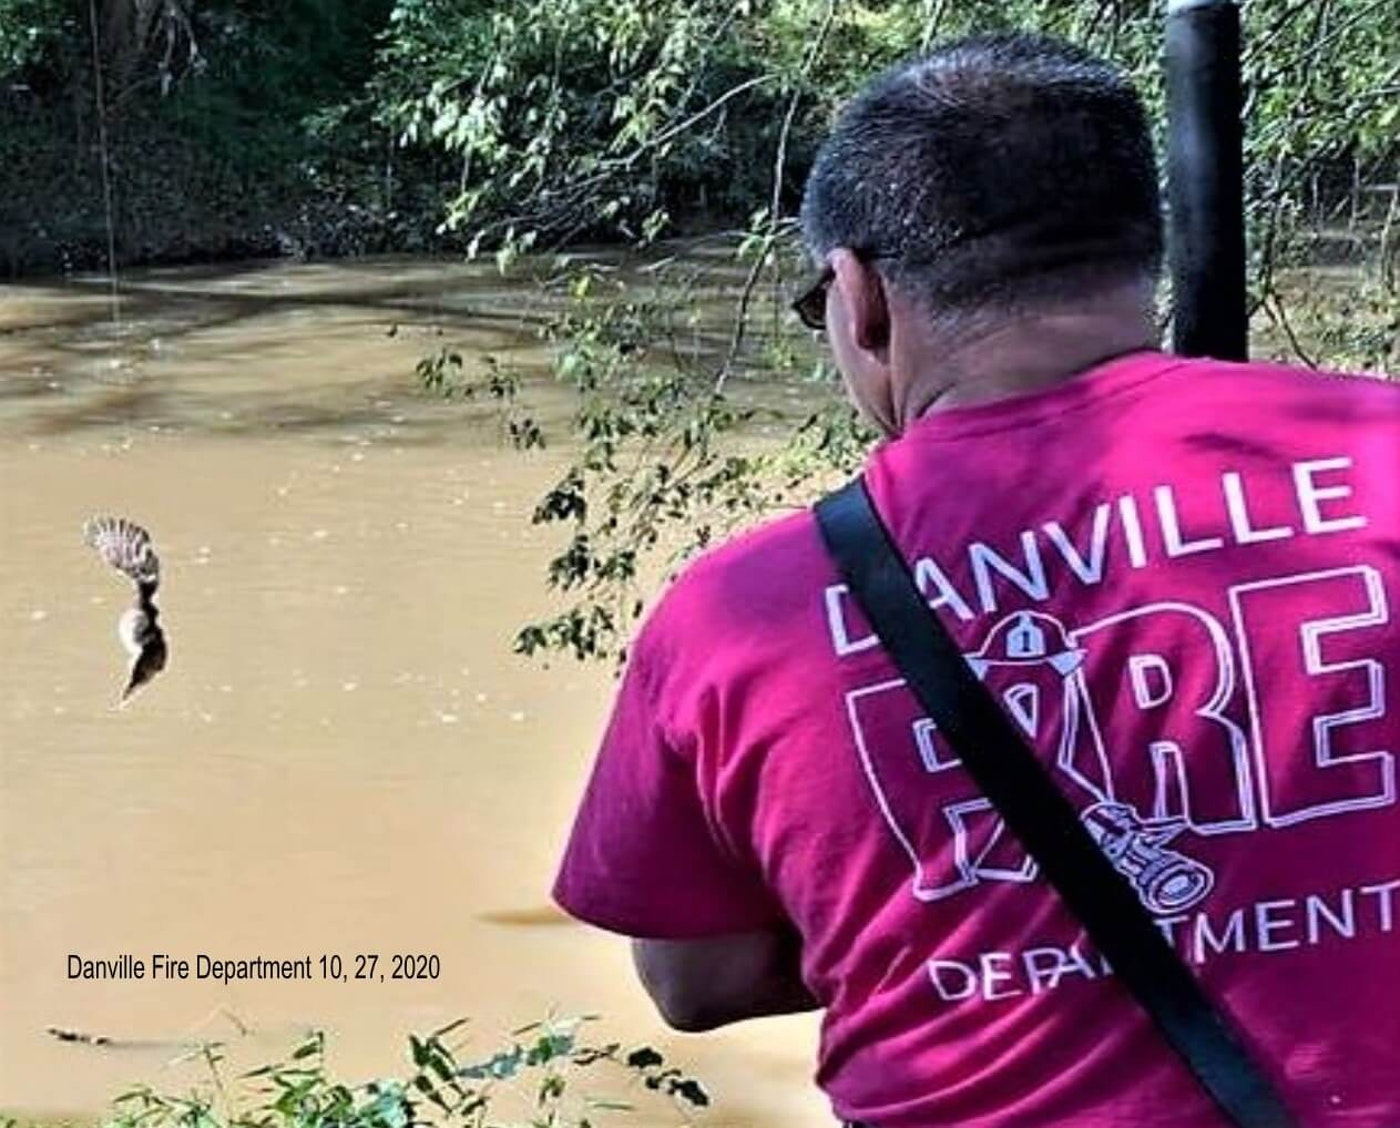 Cpt. Jason Curtis of the Danville Fire Department Station 7 rescues an owl tangled in a discarded fishing line. Contributed photo.